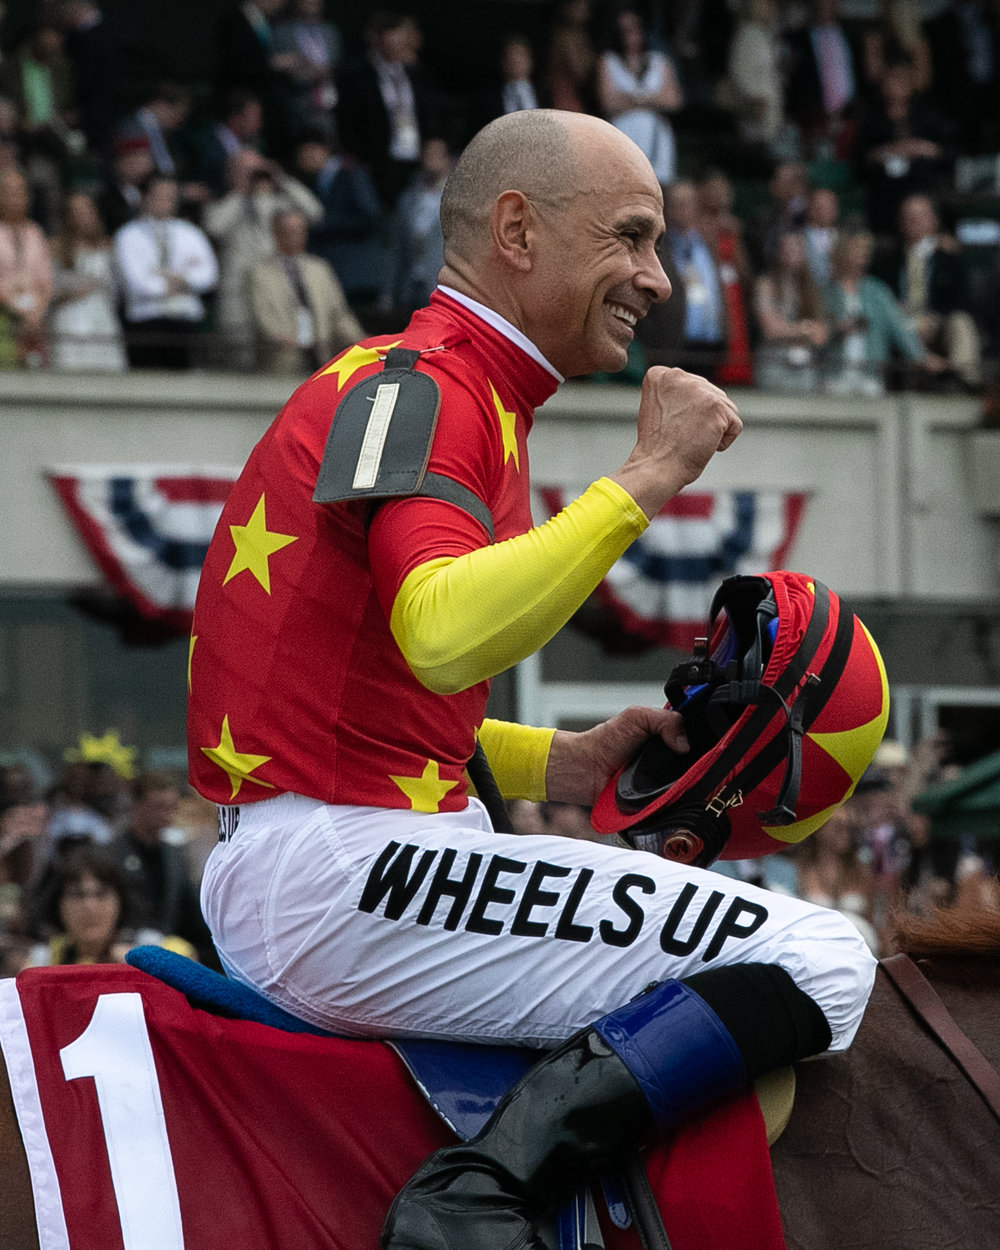 Jockey Mike Smith celebrates after winning the Belmont Stakes.